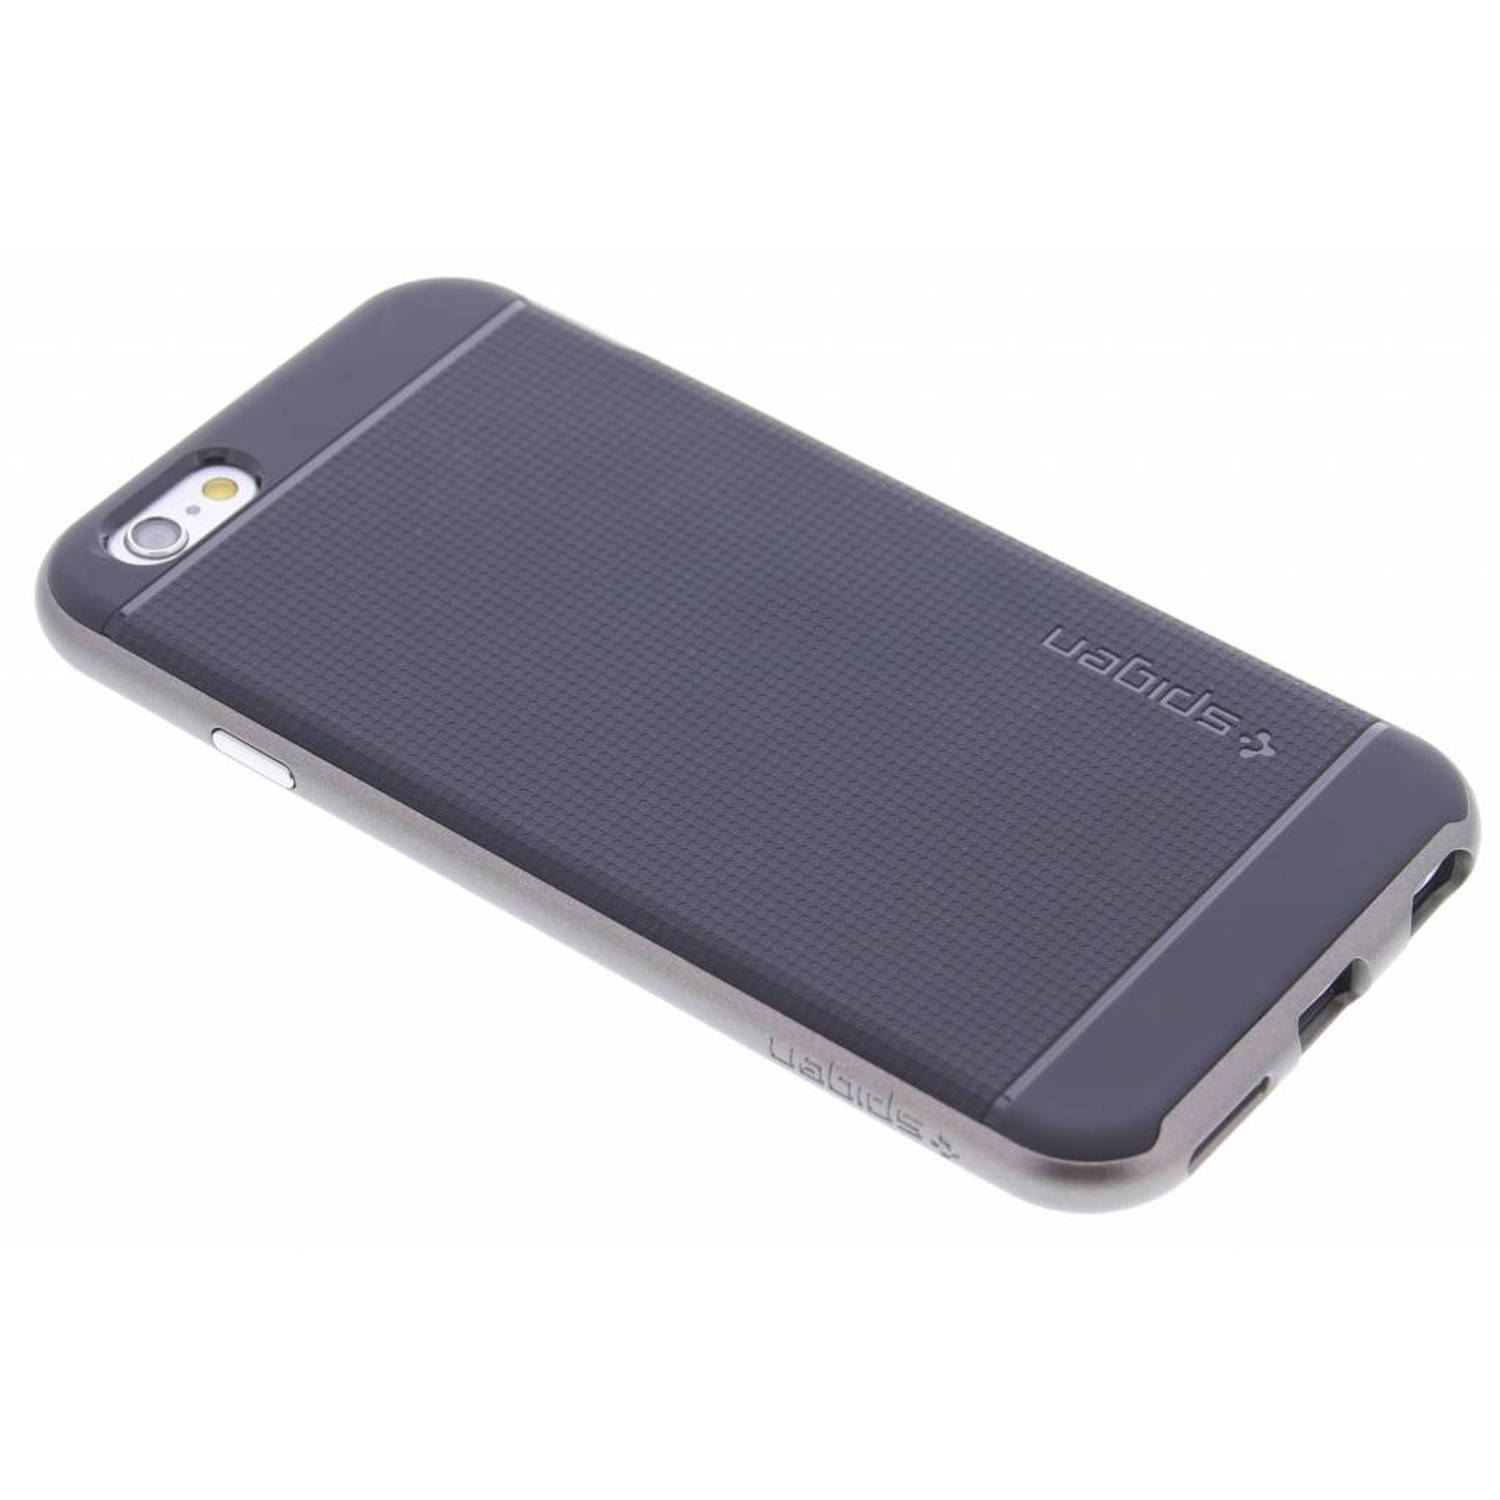 Neo Hybrid Case voor de iPhone 6 / 6s - Gunmetal